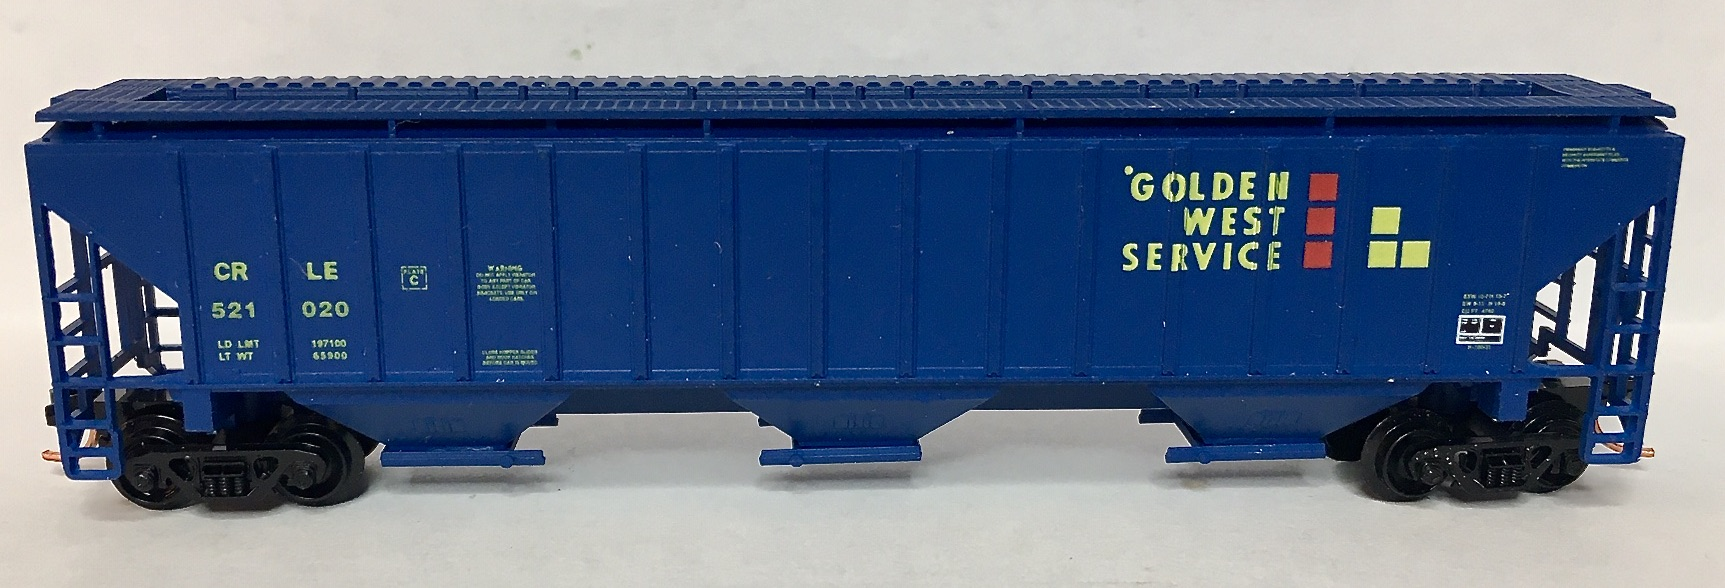 N Scale - Red Caboose - RM-15428 - Covered Hopper, 3-Bay, PS2-CD 4750 - Golden West Service - 521020